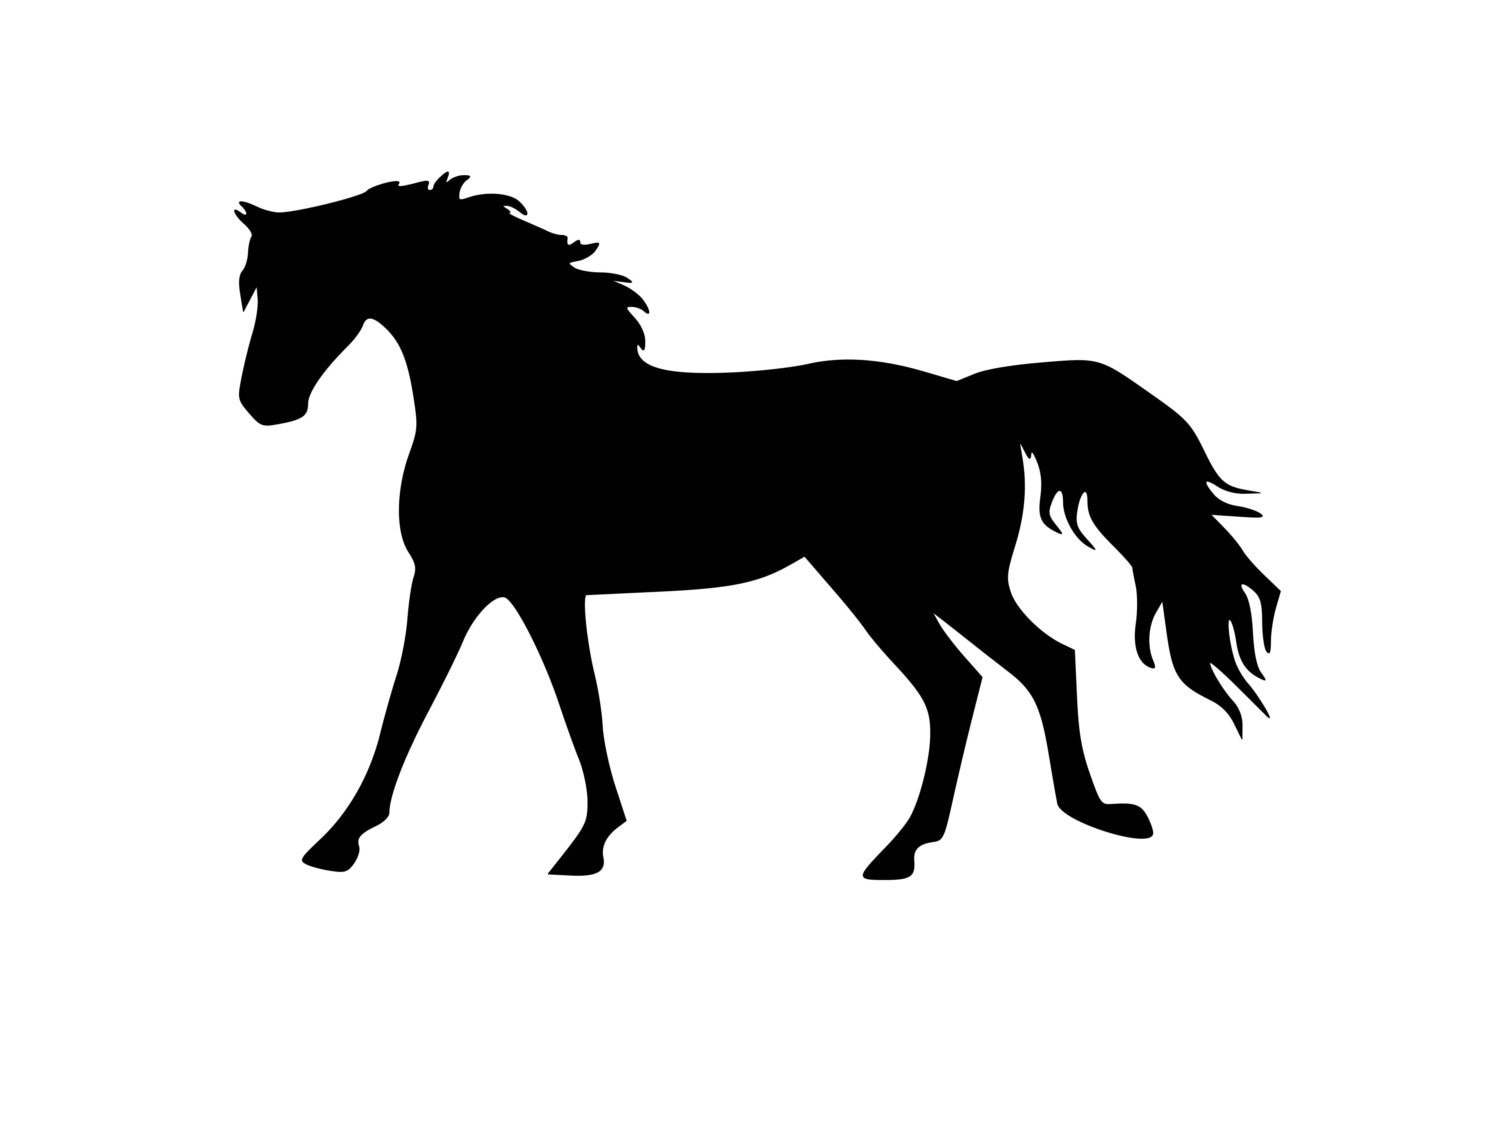 Horse sticker-Large Horse decal 27x18 wall - photo#13